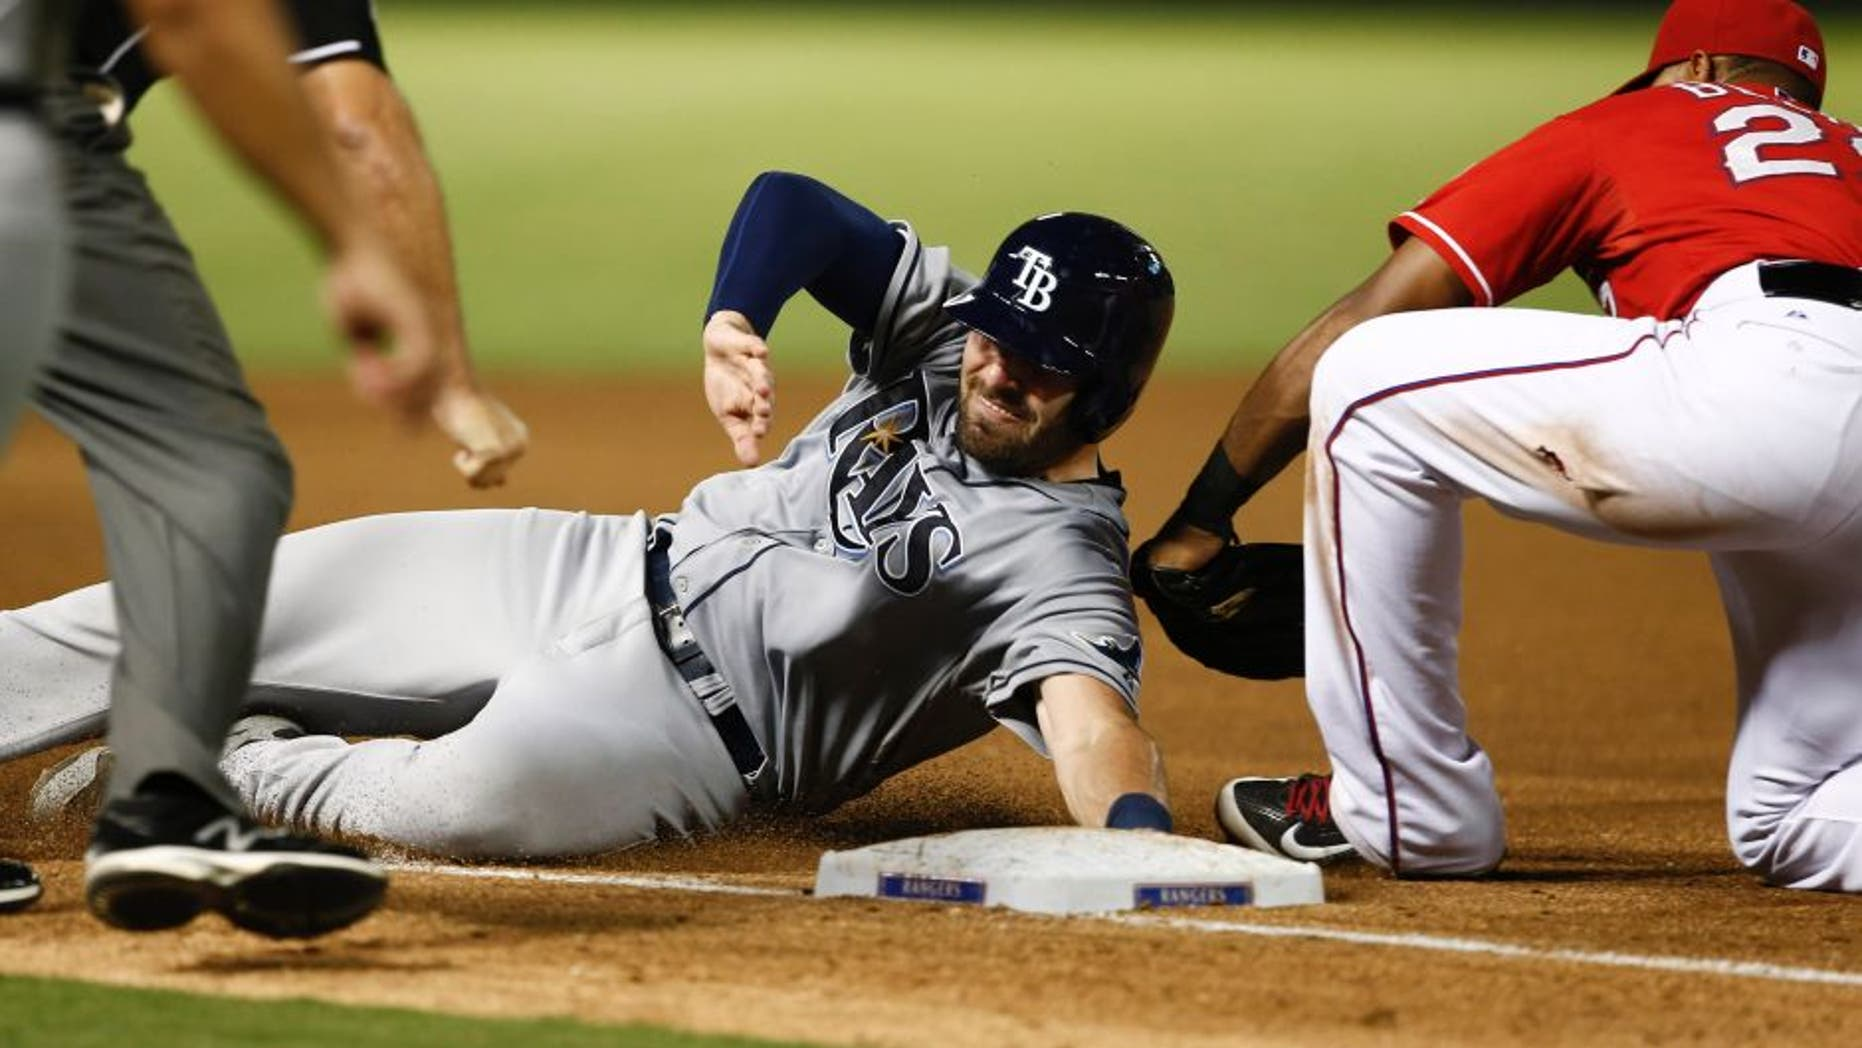 Aug 14, 2015; Arlington, TX, USA; Texas Rangers third baseman Adrian Beltre (29) tags out Tampa Bay Rays catcher Curt Casali (19) during the seventh inning of a baseball game at Globe Life Park in Arlington. The Rangers won 5-3. Mandatory Credit: Jim Cowsert-USA TODAY Sports